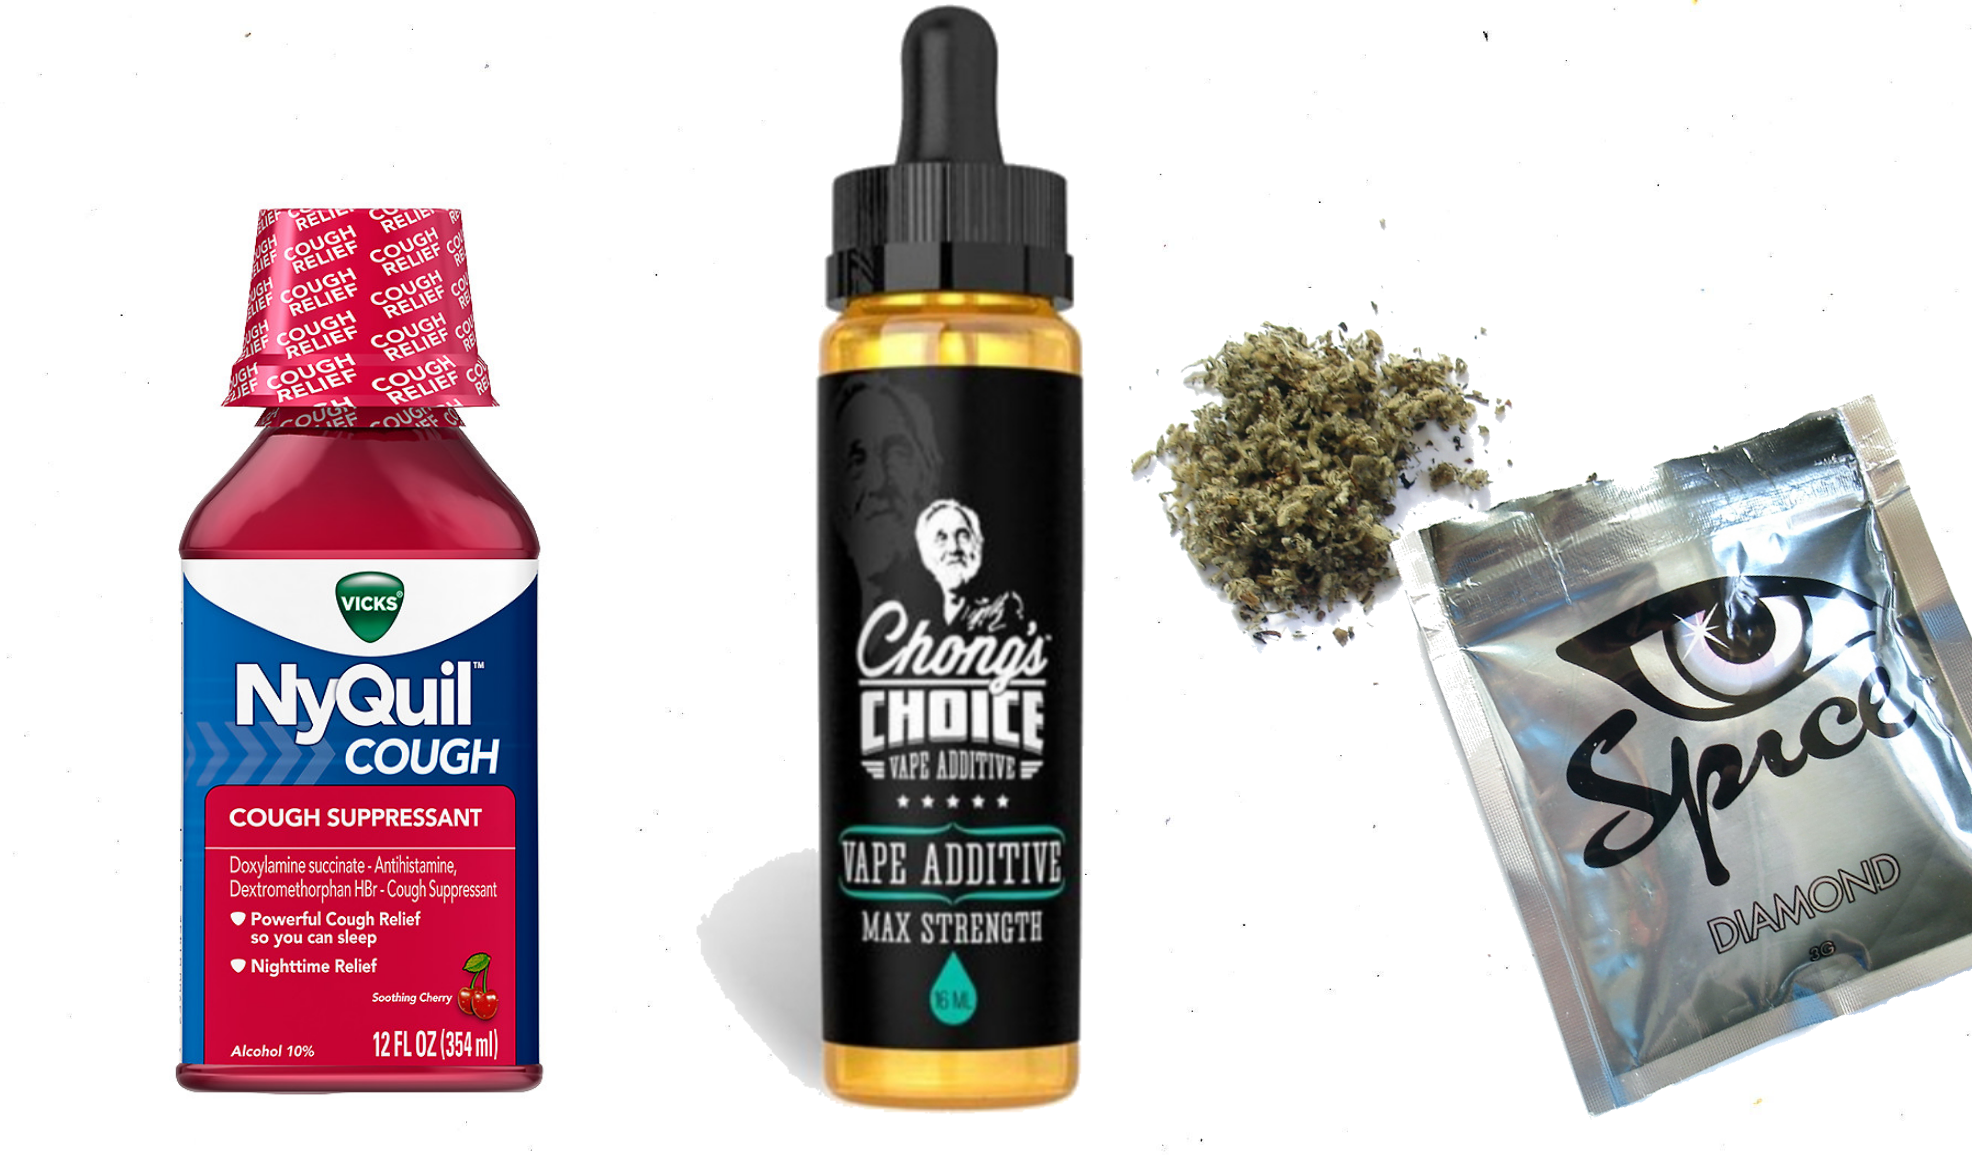 DXM and Synthetic Cannabinoids found in popular CBD Products